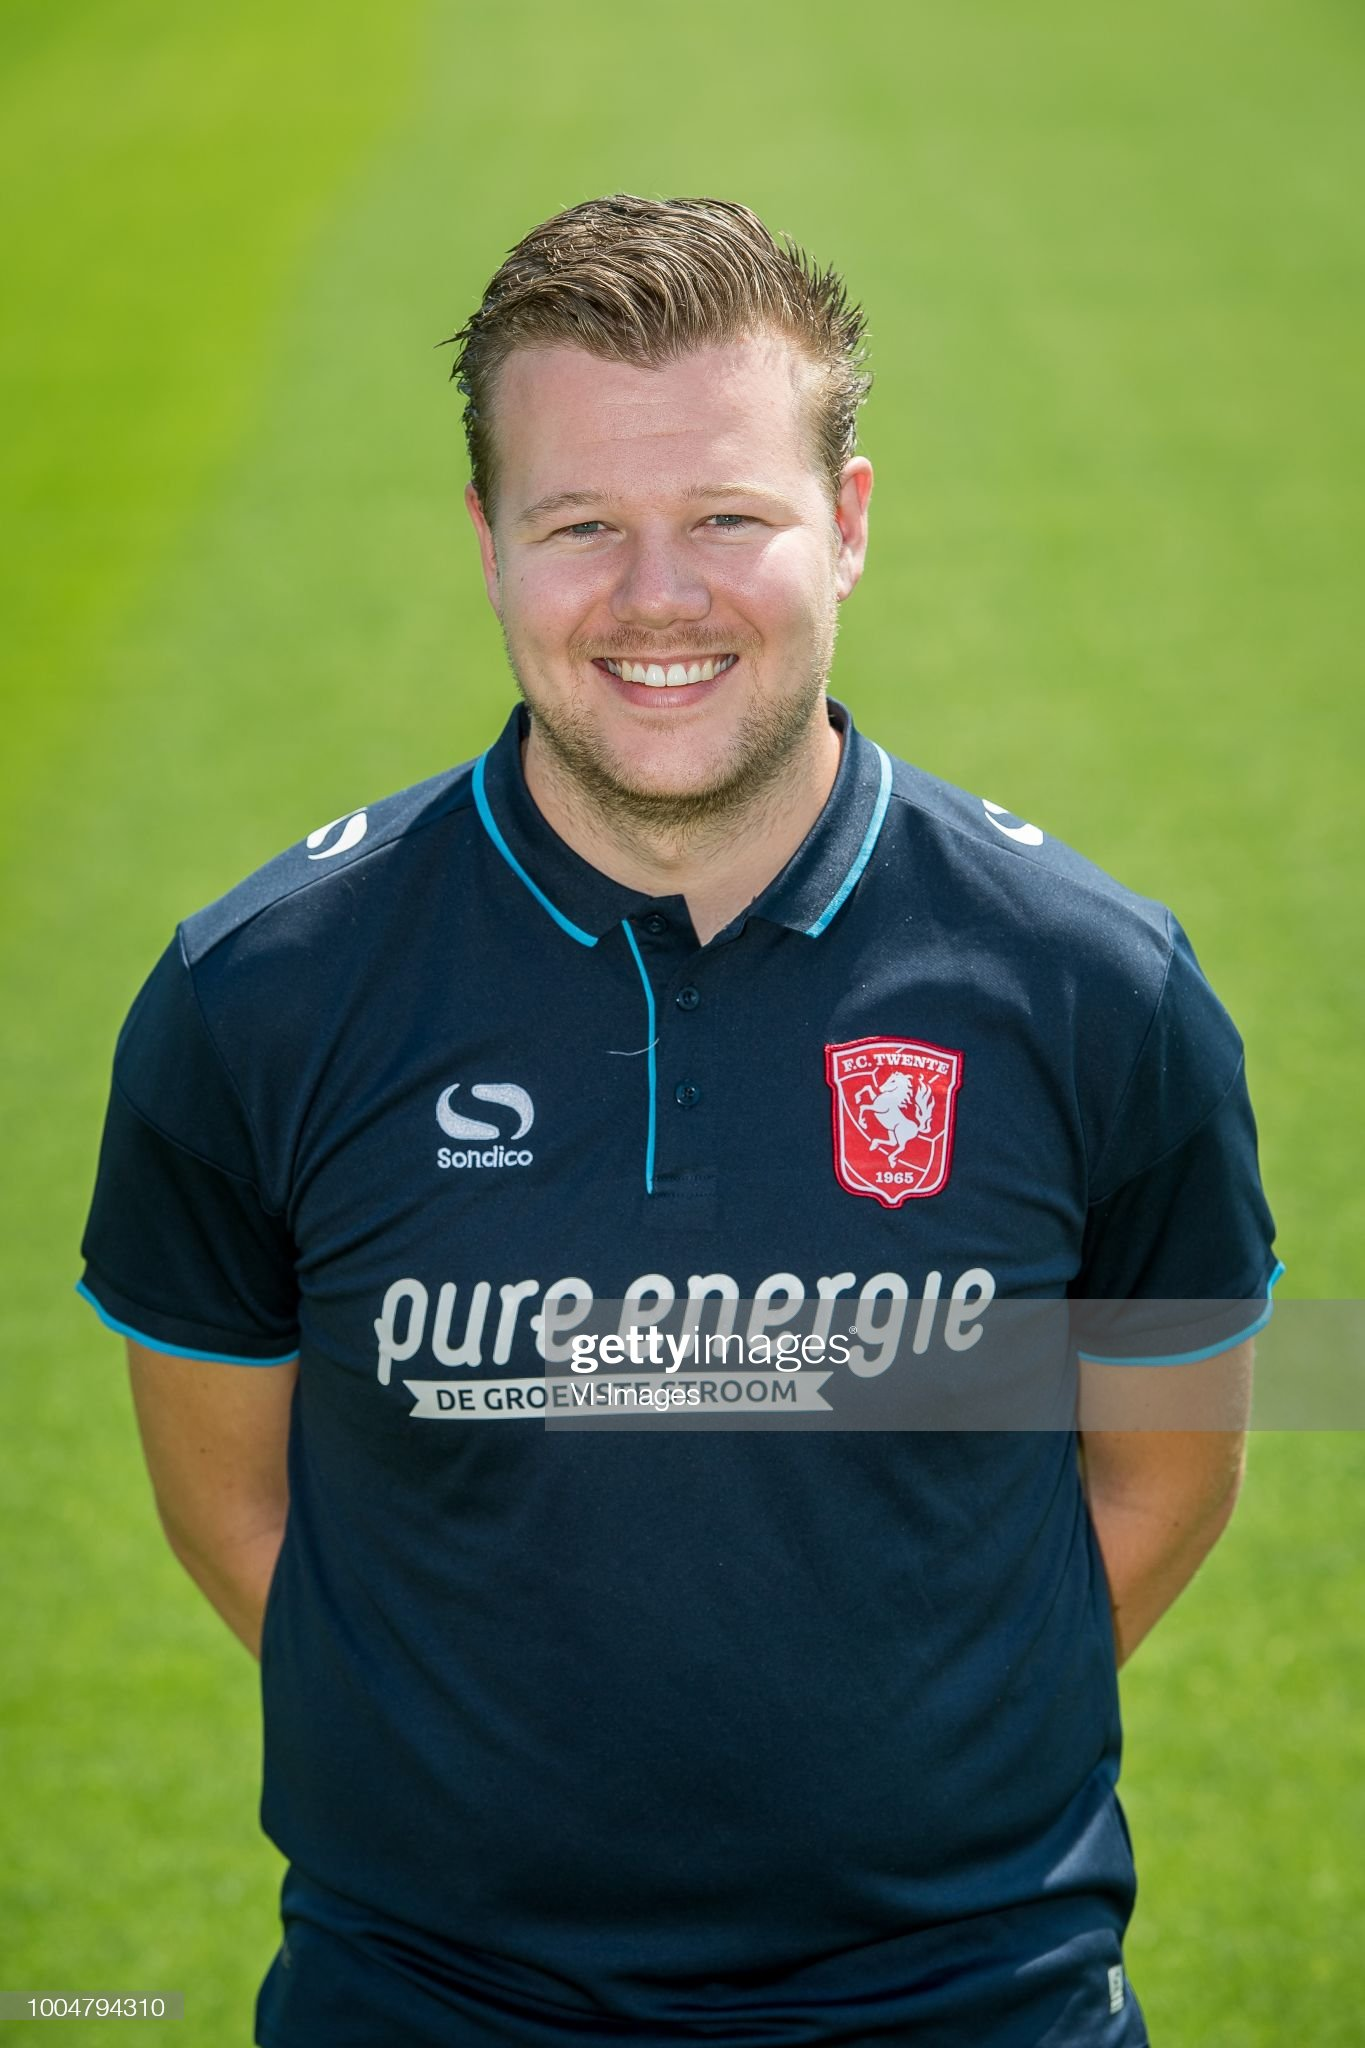 https://media.gettyimages.com/photos/davey-de-jonge-during-the-team-presentation-of-fc-twente-on-july-24-picture-id1004794310?s=2048x2048